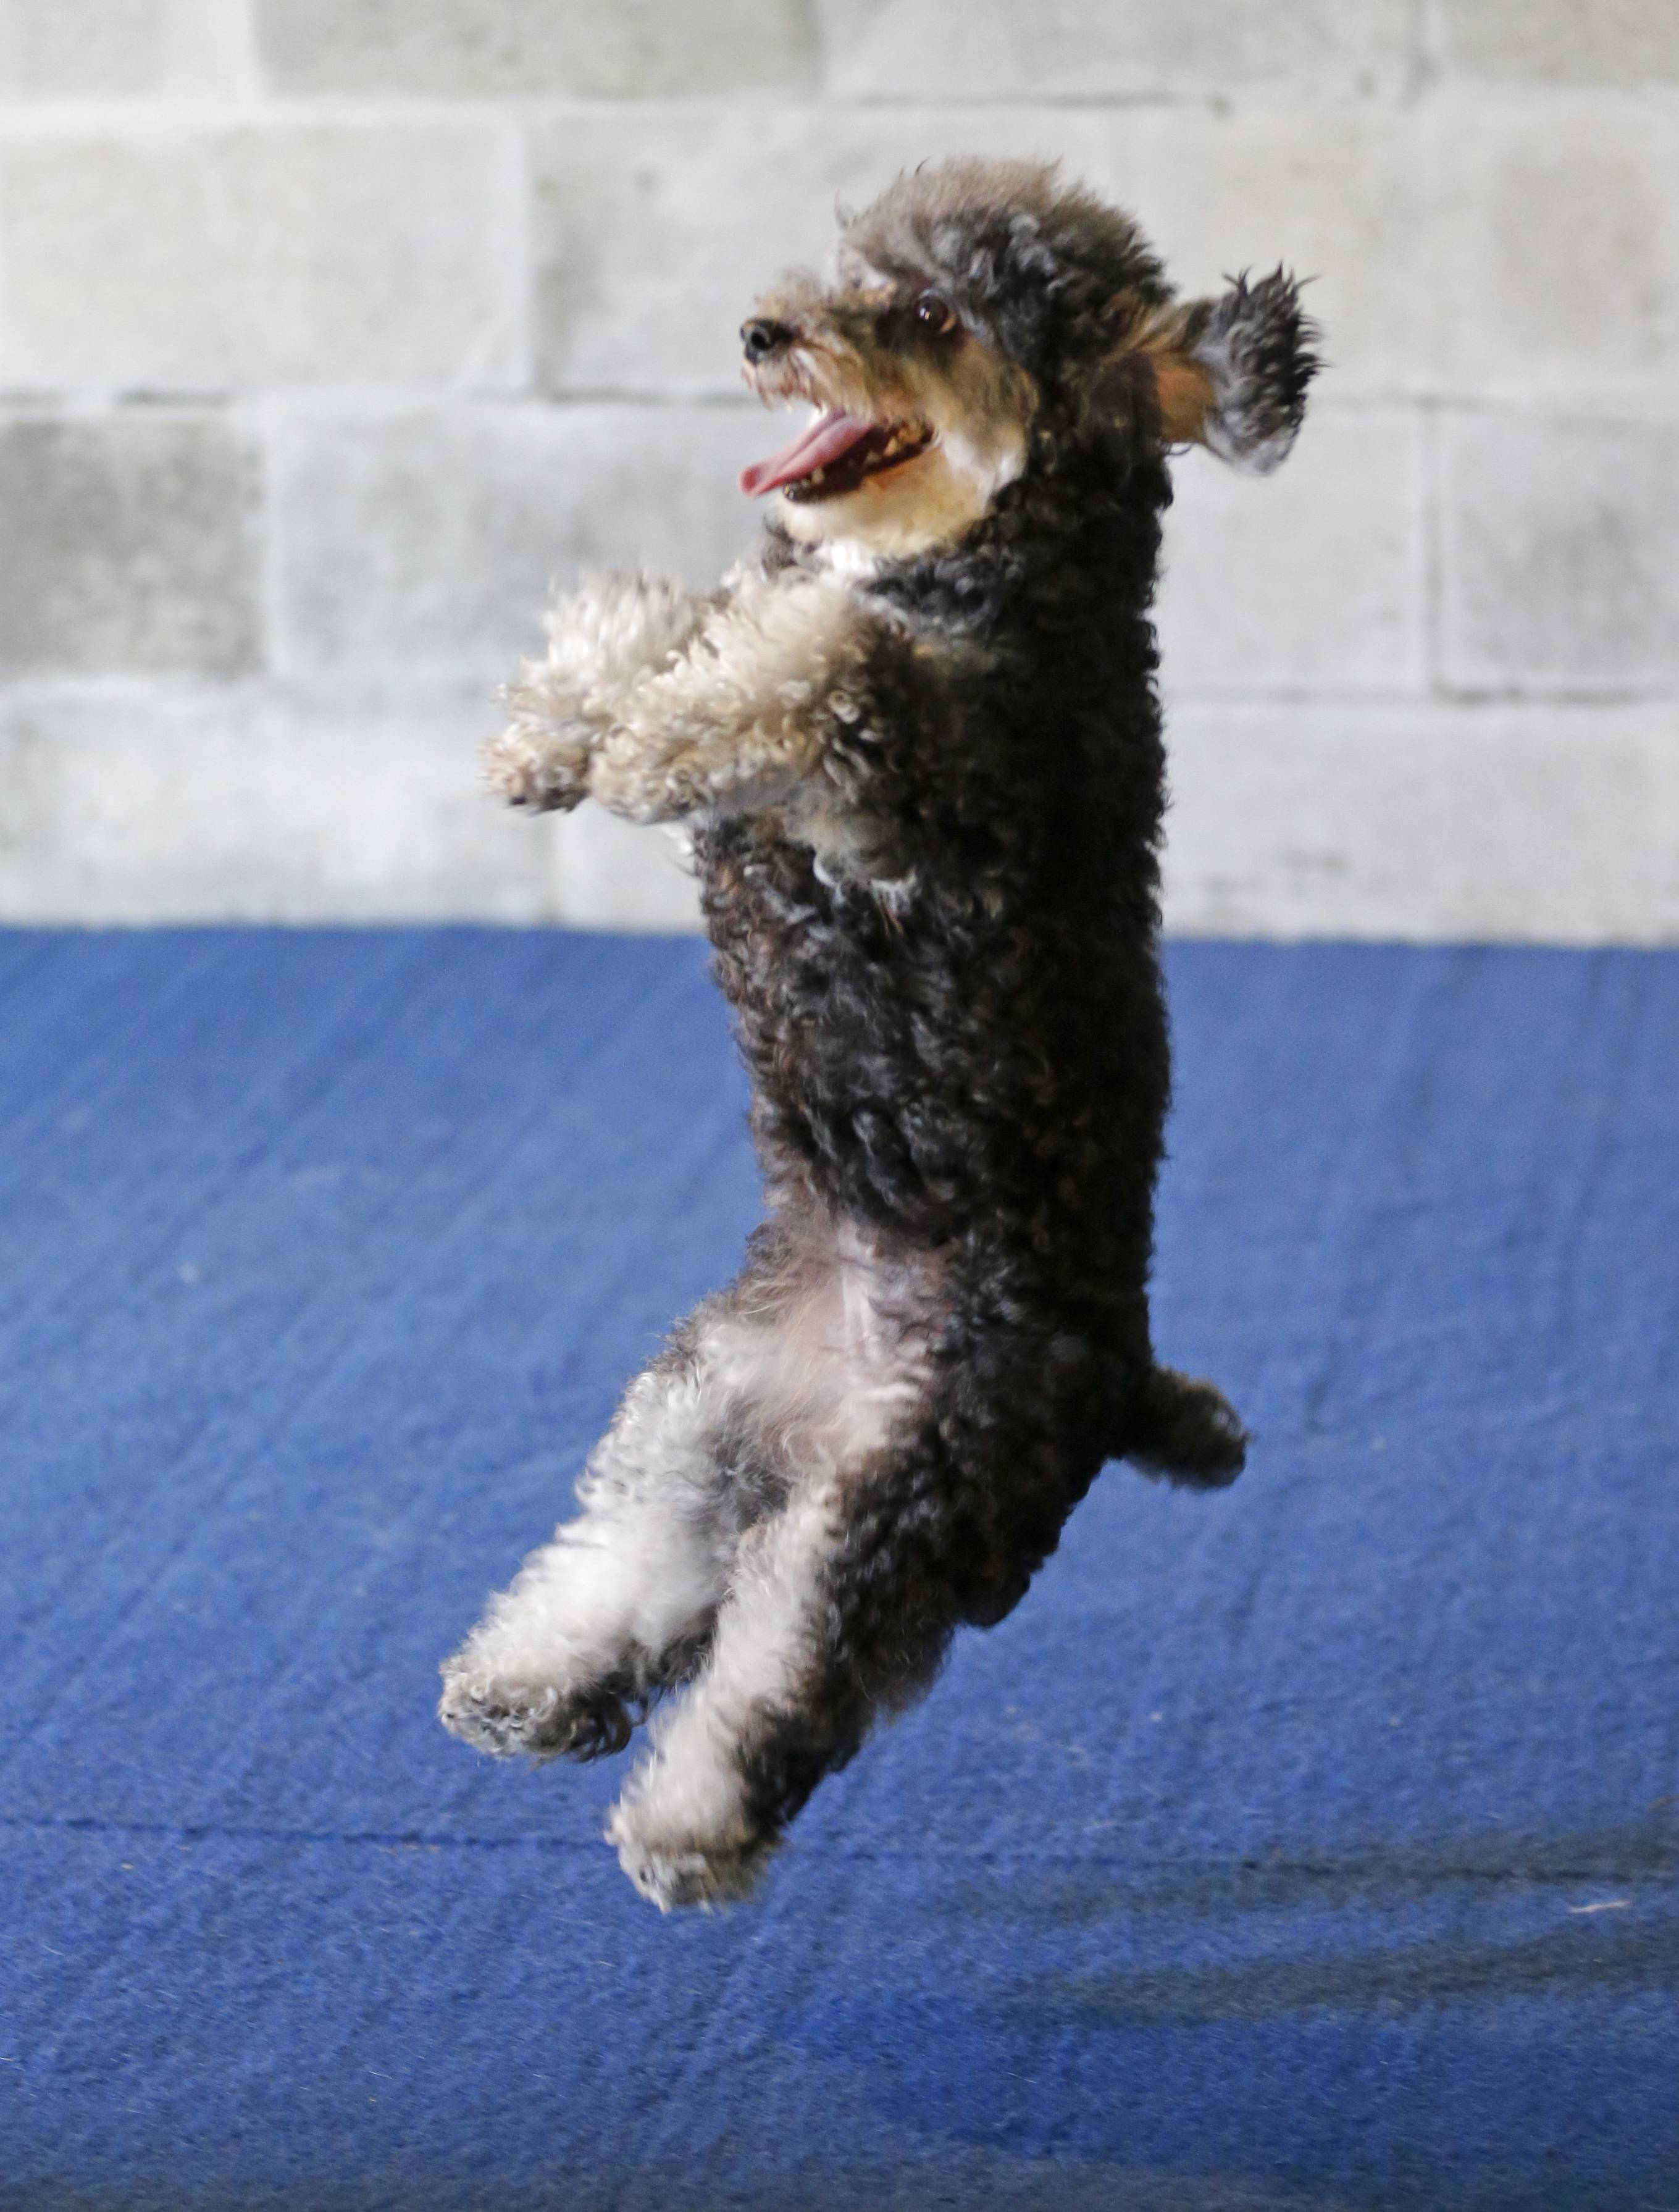 Loca, one of the Olate dogs, performs during a training session in Sorrento, Fla. The Olates spend more than 11 months a year on the road performing, and they have been tapped to star in short films bankrolled by Ellen DeGeneres' pet food company, one of which is set to screen at the Cannes Film Festival.